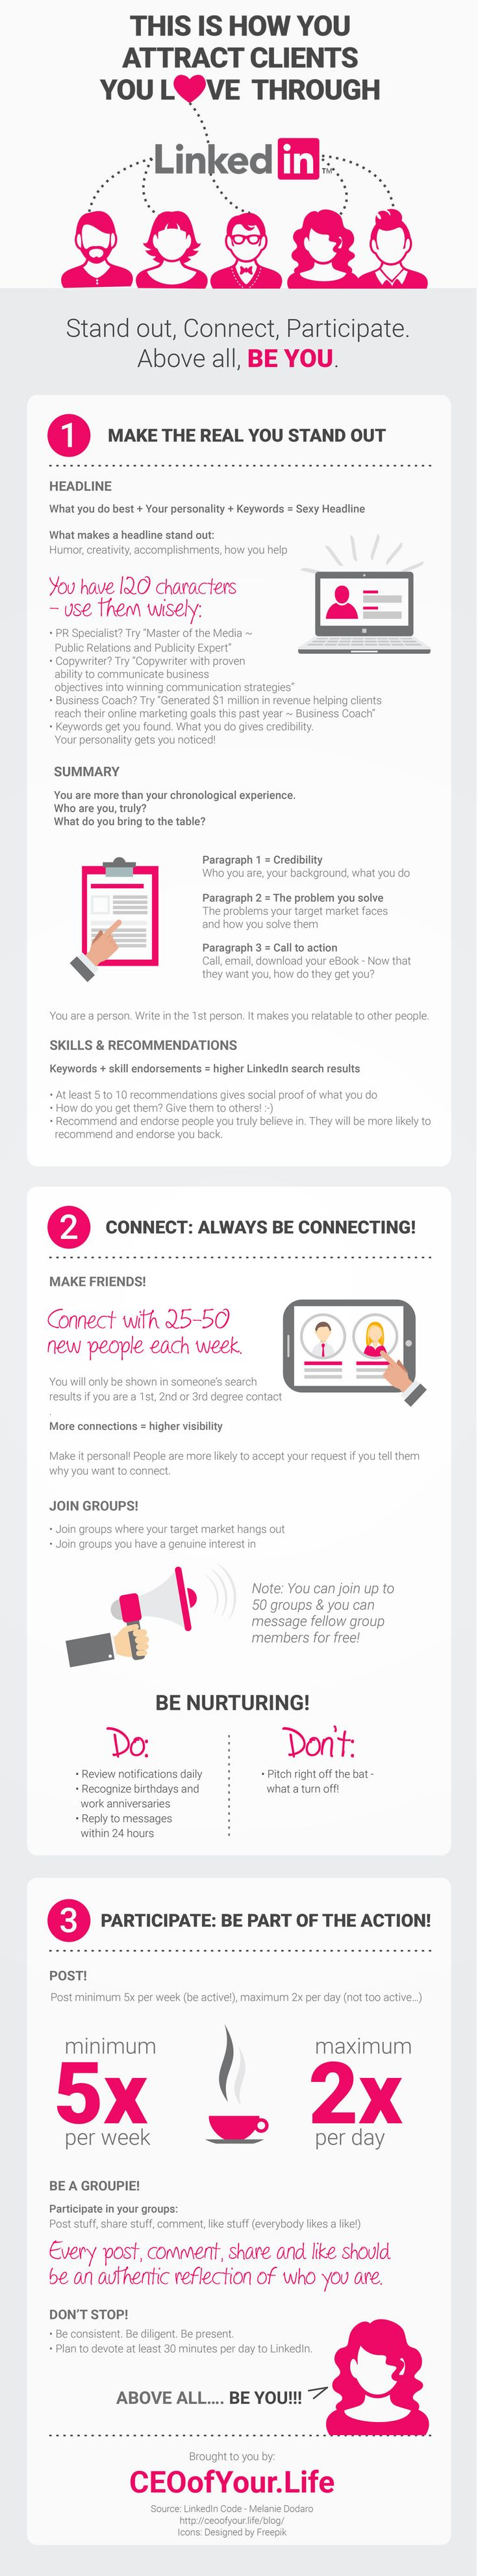 How to Attract the Right Clients on LinkedIn [Infographic]